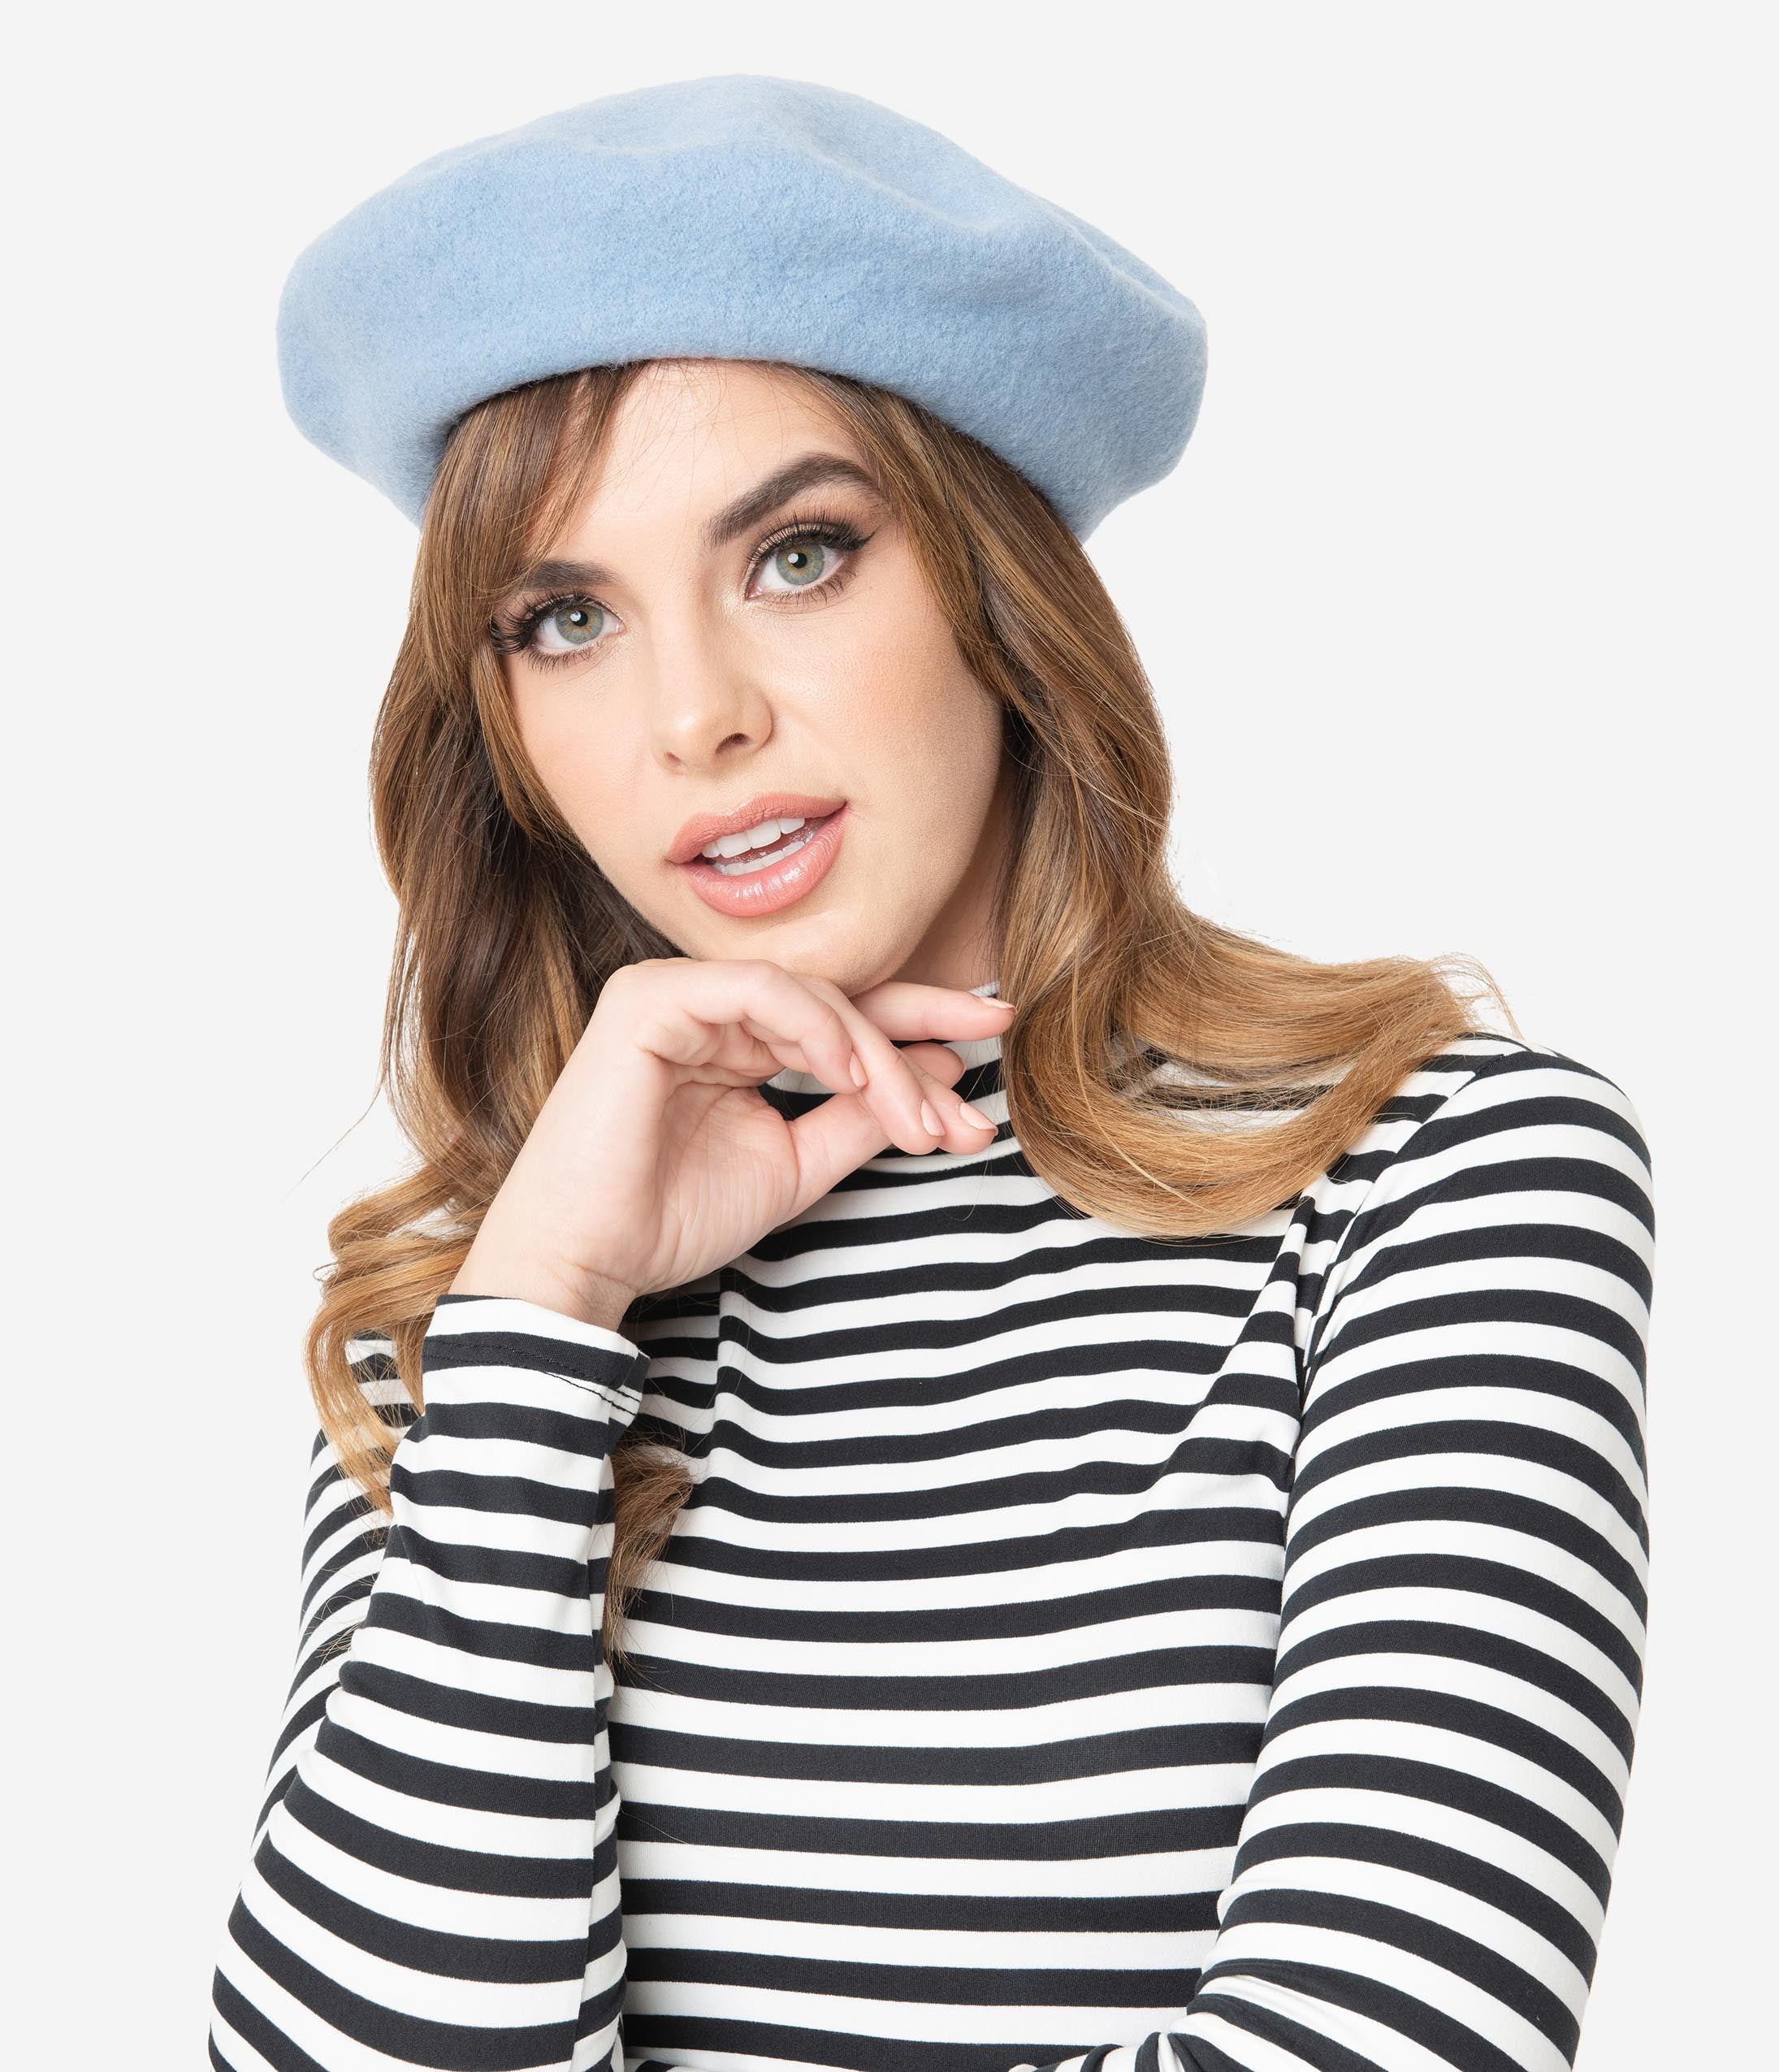 1950s Women's Hat Styles & History Retro Style Sky Blue Wool Beret $18.00 AT vintagedancer.com